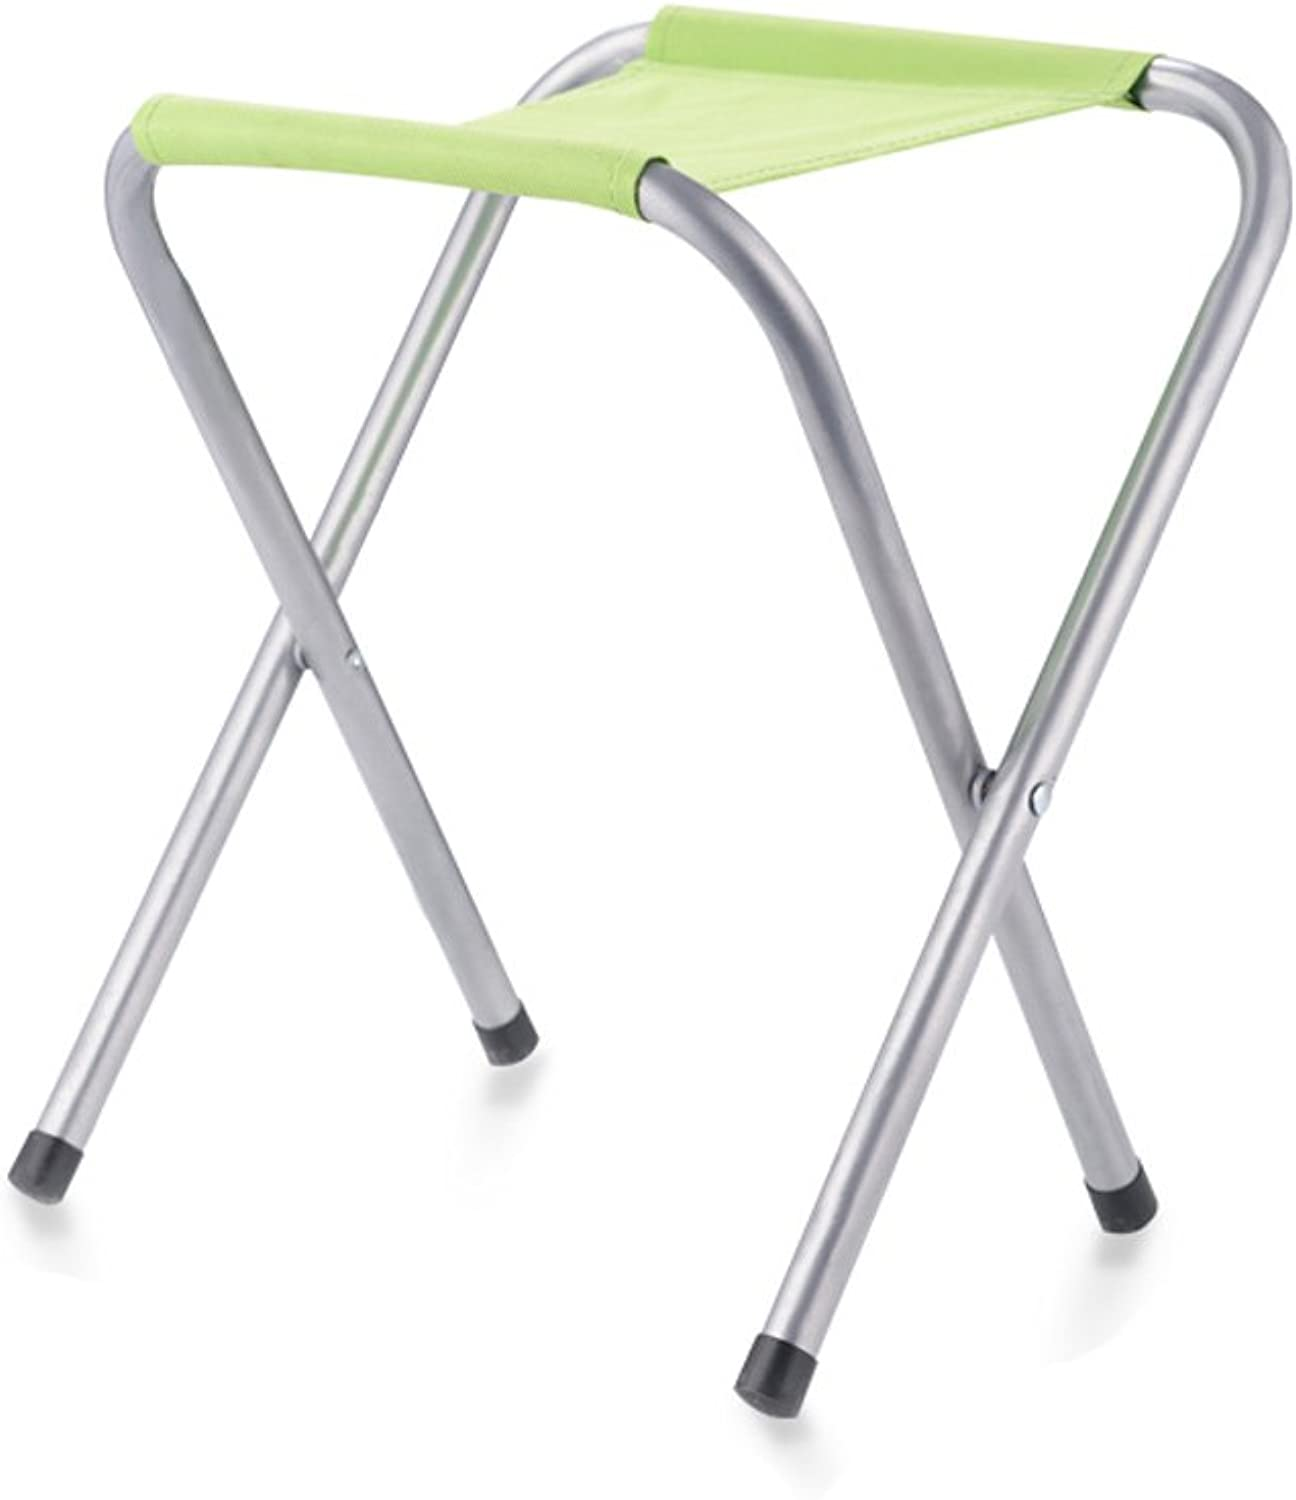 Folding Step Stool, Slip Foldable Step Stool Easy Open Kitchen Stepping Stools Garden Step Stool, Bathroom, Bedroom, Kids or Adults